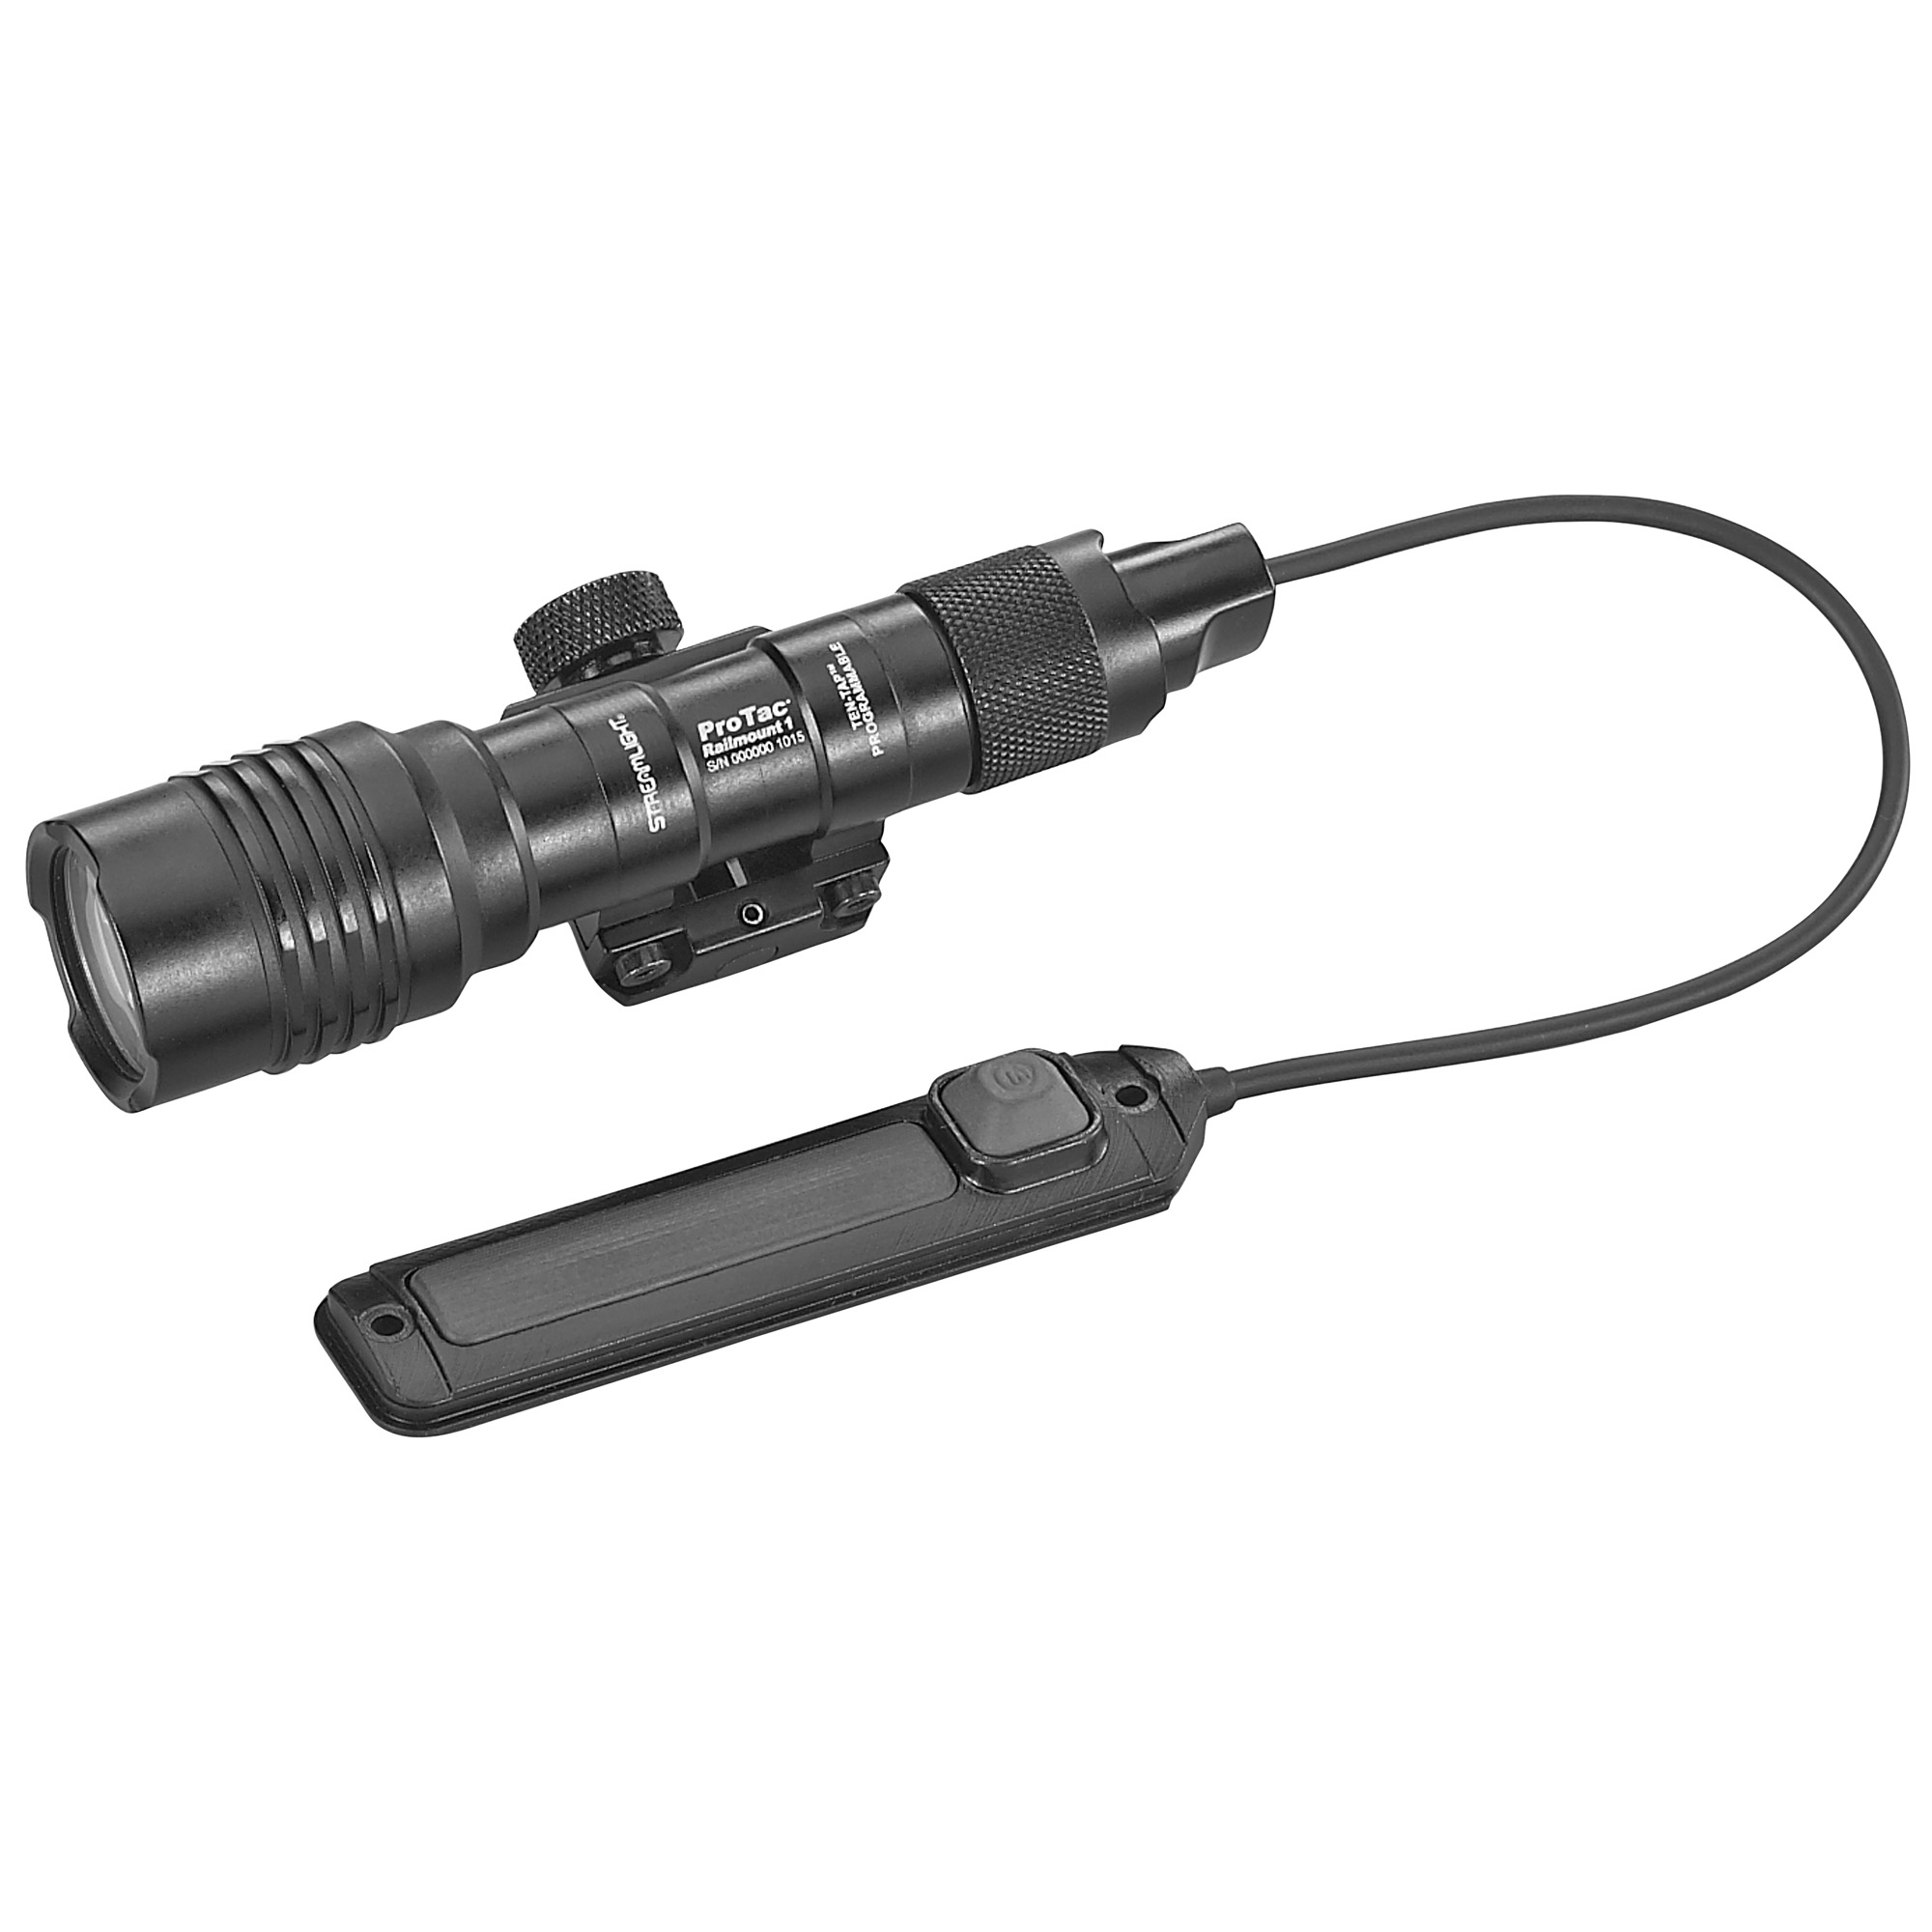 "The ProTac series expands into weapon-mounted lights with this 350 lumen light featuring a dedicated fixed-mount for Picatinny rails. It uses either a remote switch with momentary/constant on operation or a standard push-button tail switch"" and can run on either a lithium battery or an easy-to-find alkaline battery."